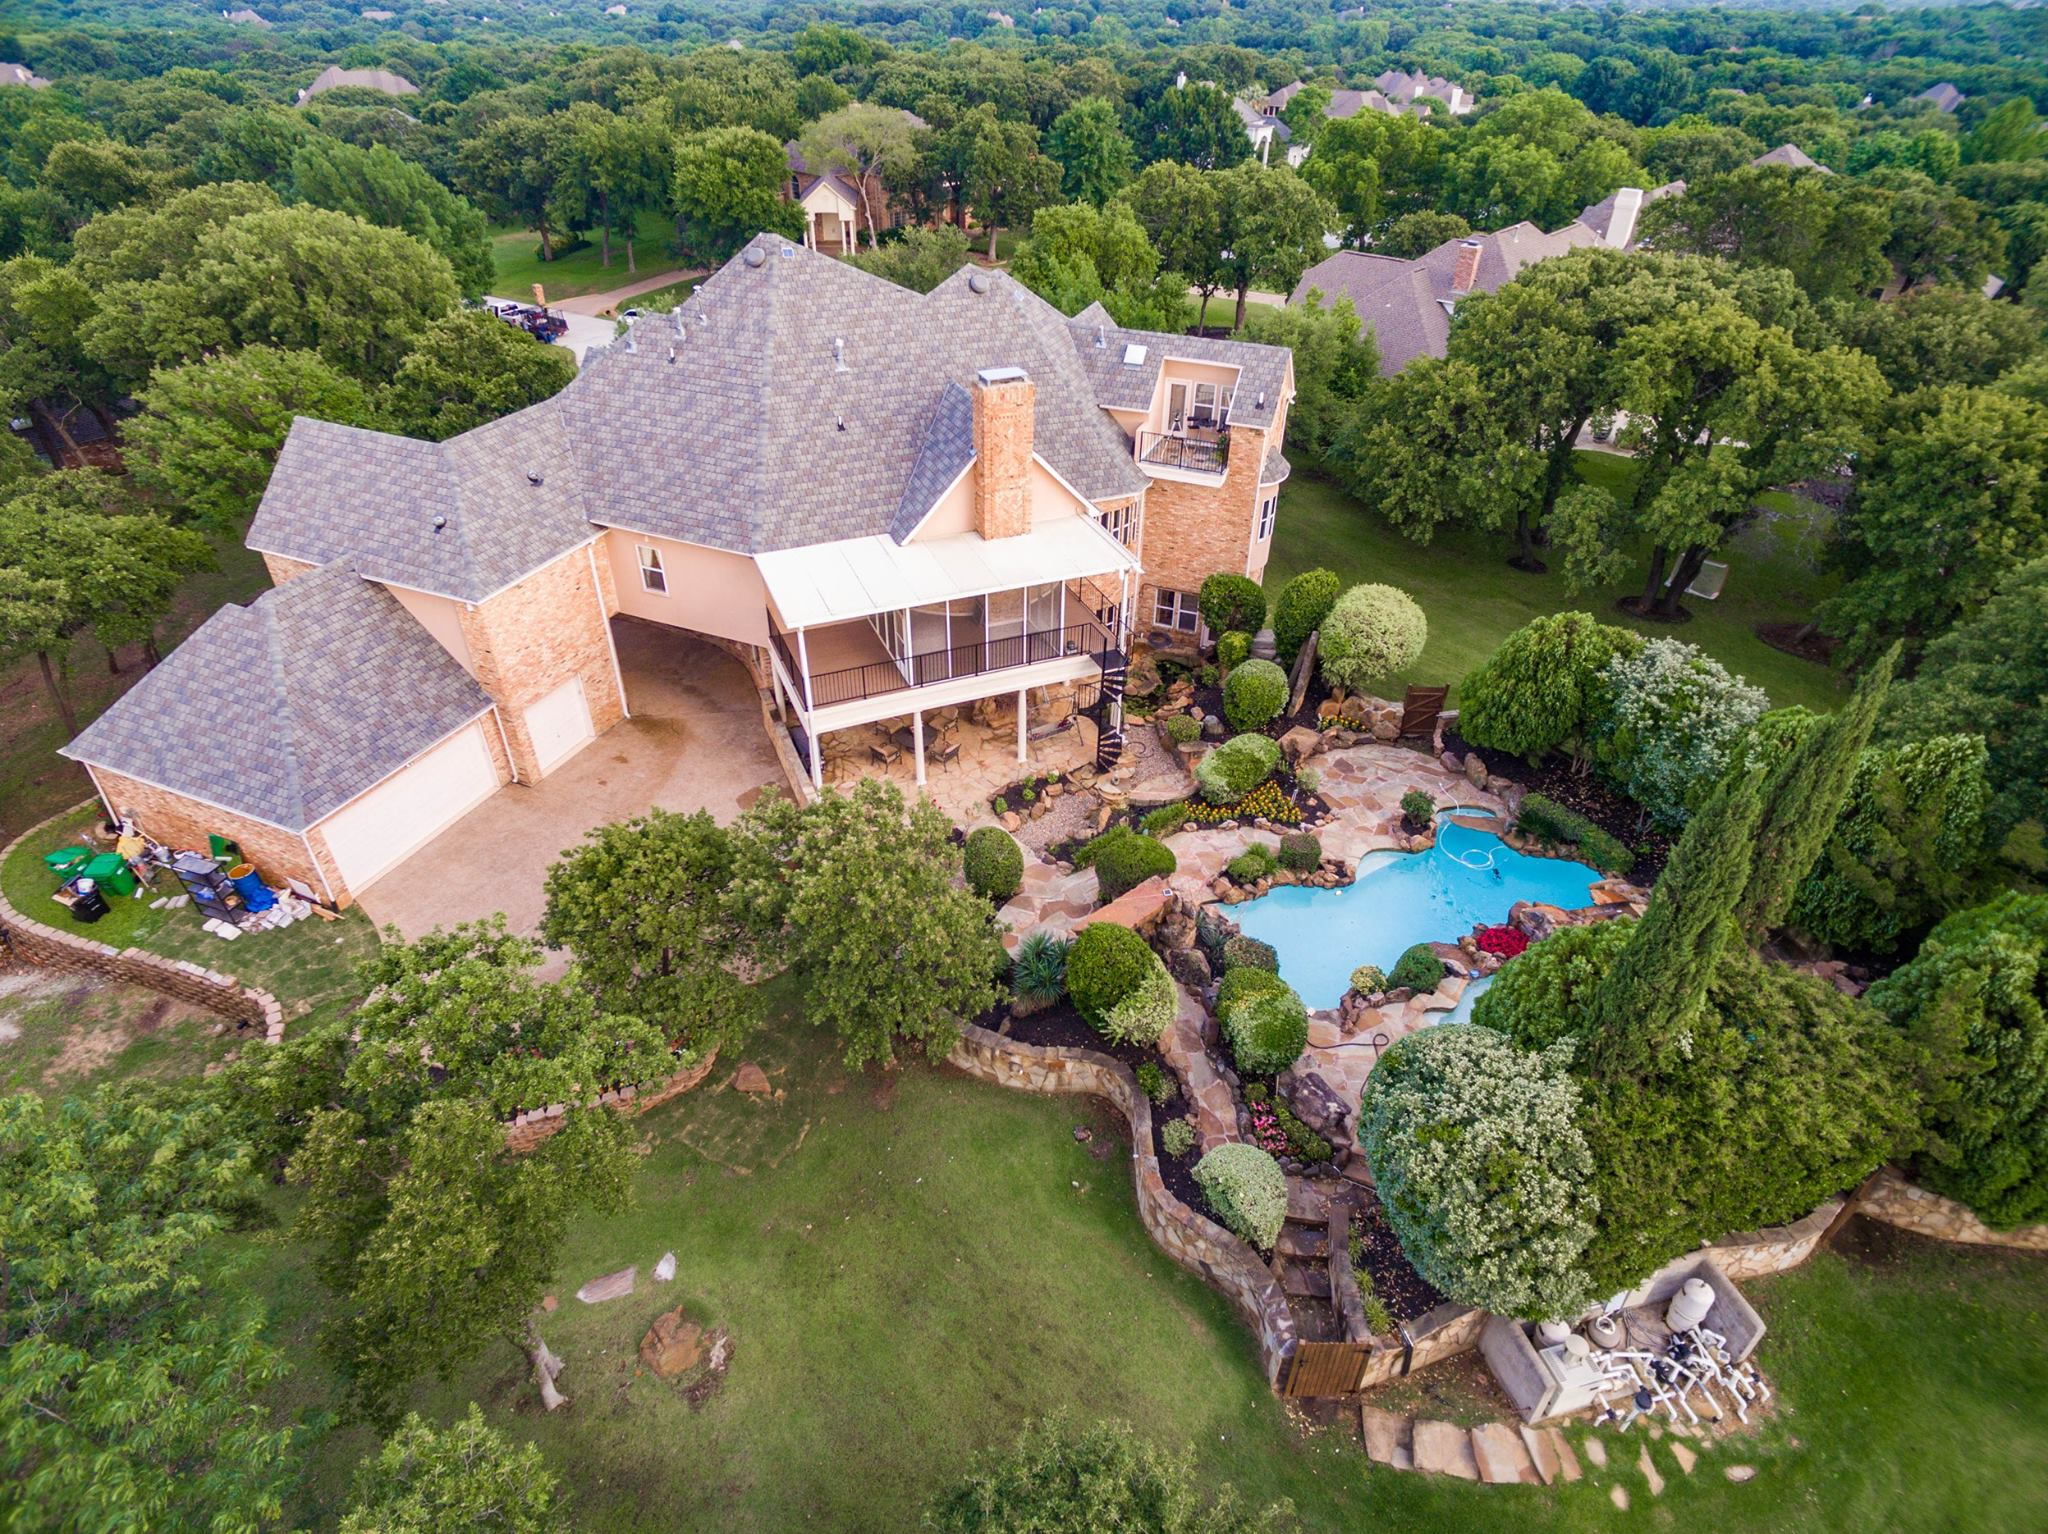 Real Estate Aerial Photography from FlashFilm Media in Dallas/Fort Worth